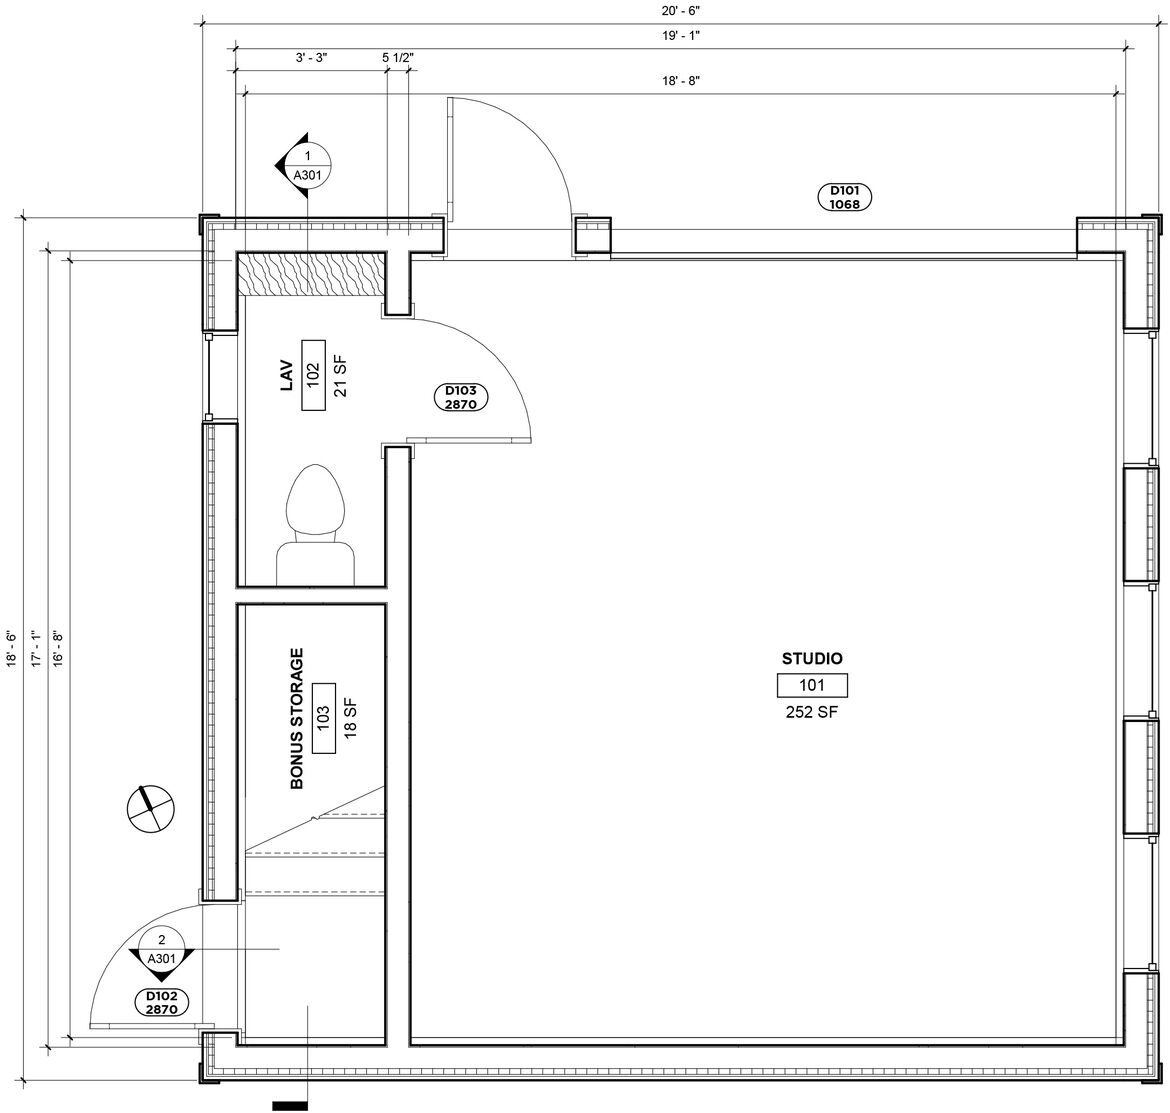 20190911 Somerville Studio 1ST FLOOR PLAN